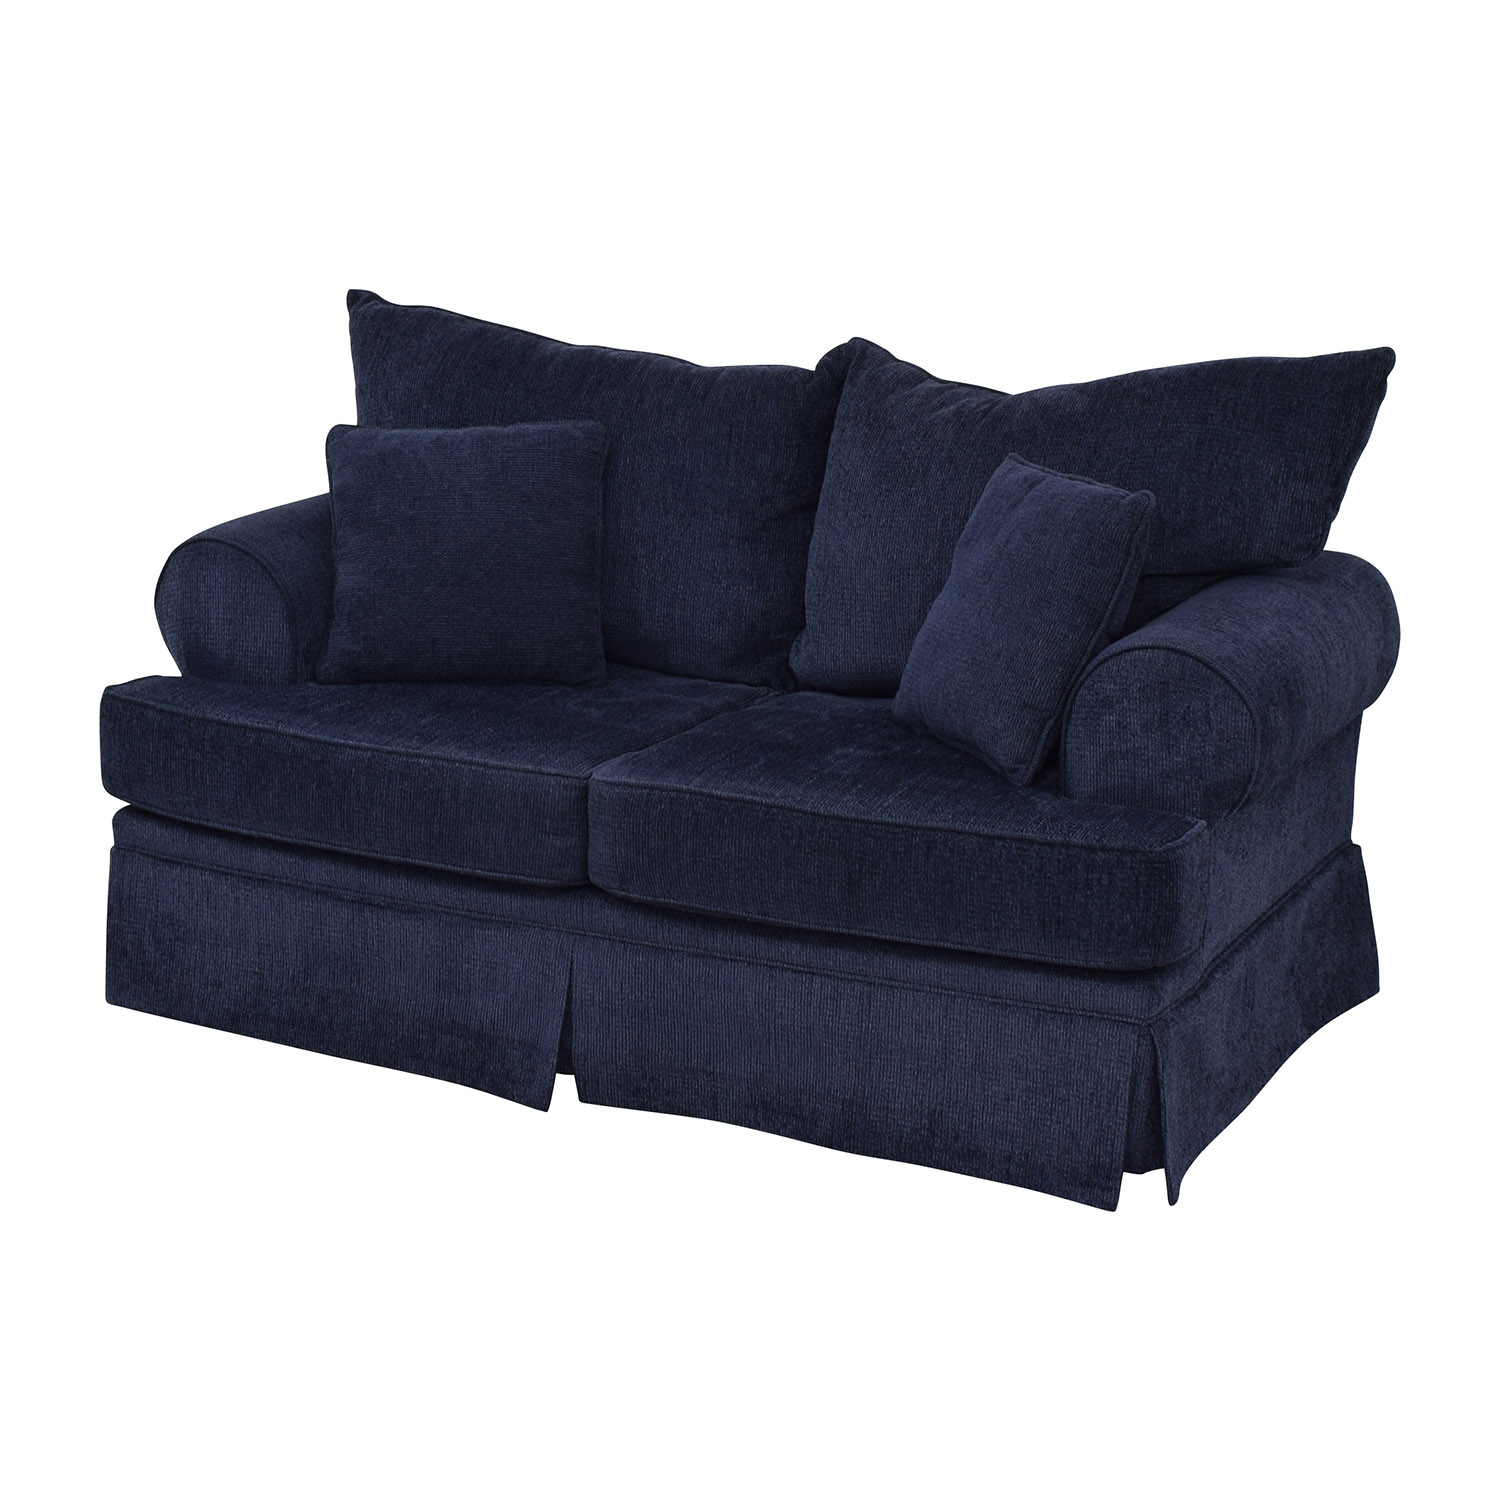 63 OFF Bobs Furniture Bobs Furniture Deep Blue